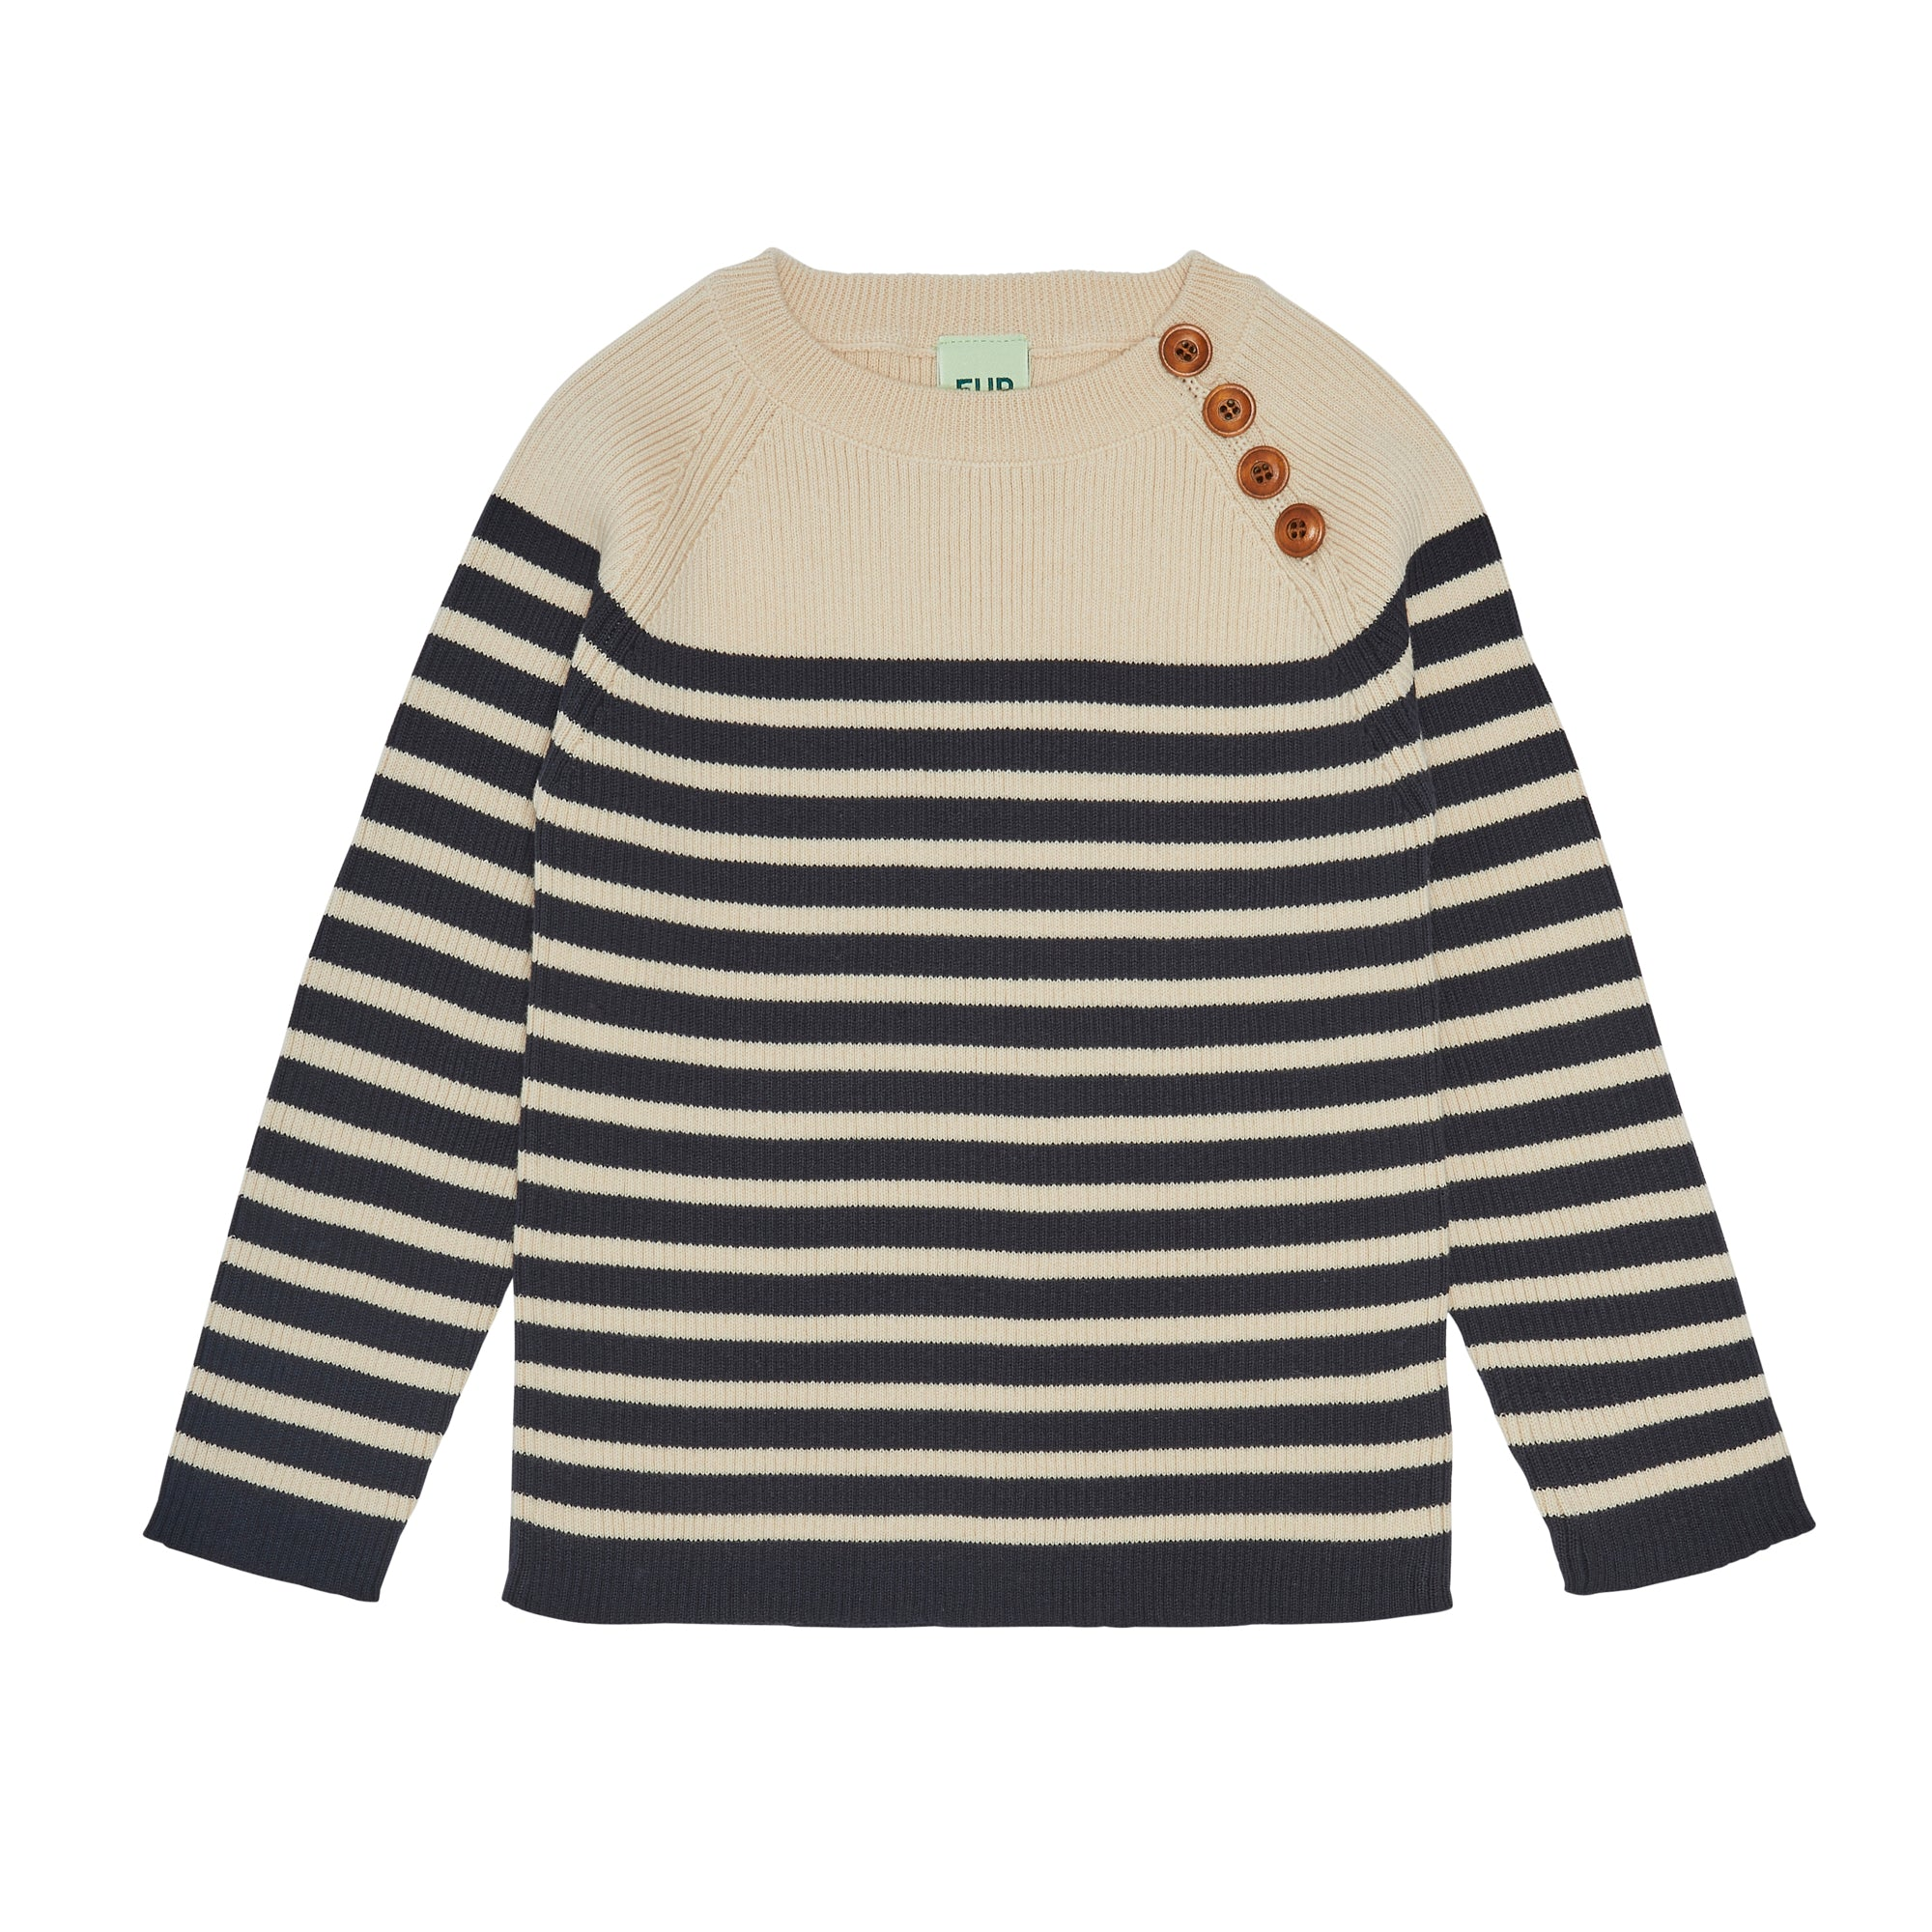 FUB Sweater ecru/dark navy